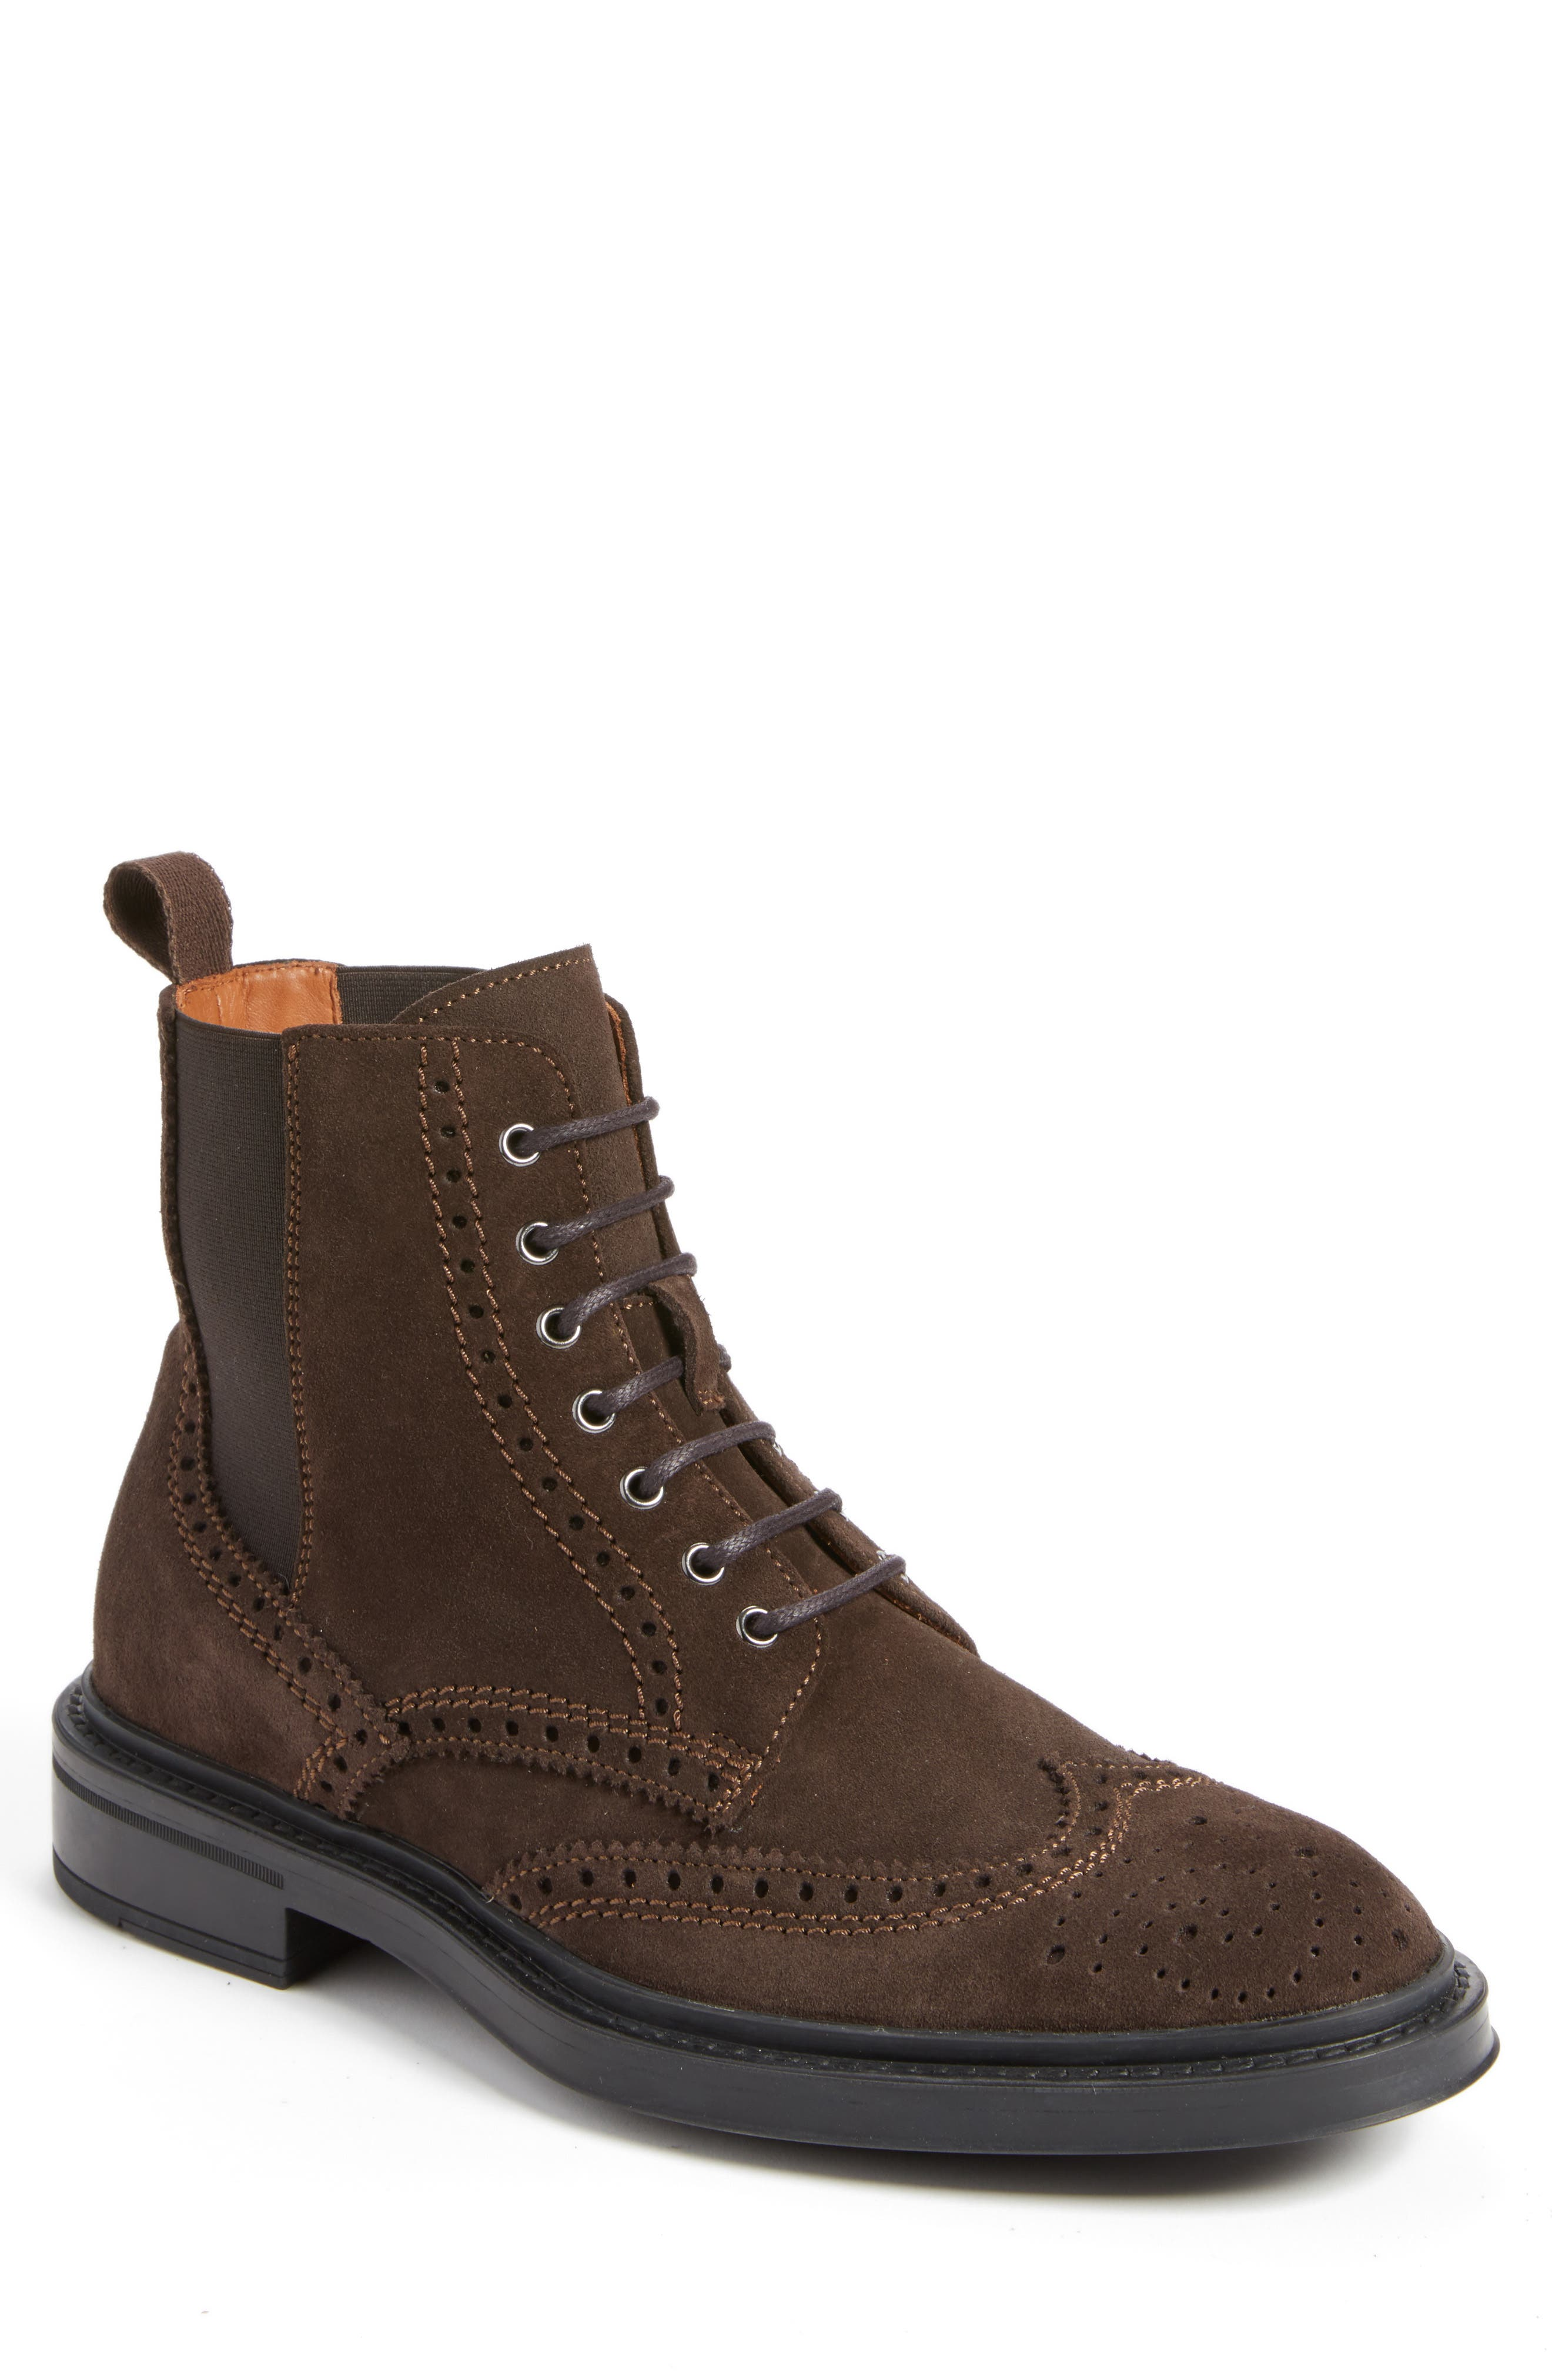 Alternate Image 1 Selected - Aquatalia Lawrence Wingtip Boot (Men)